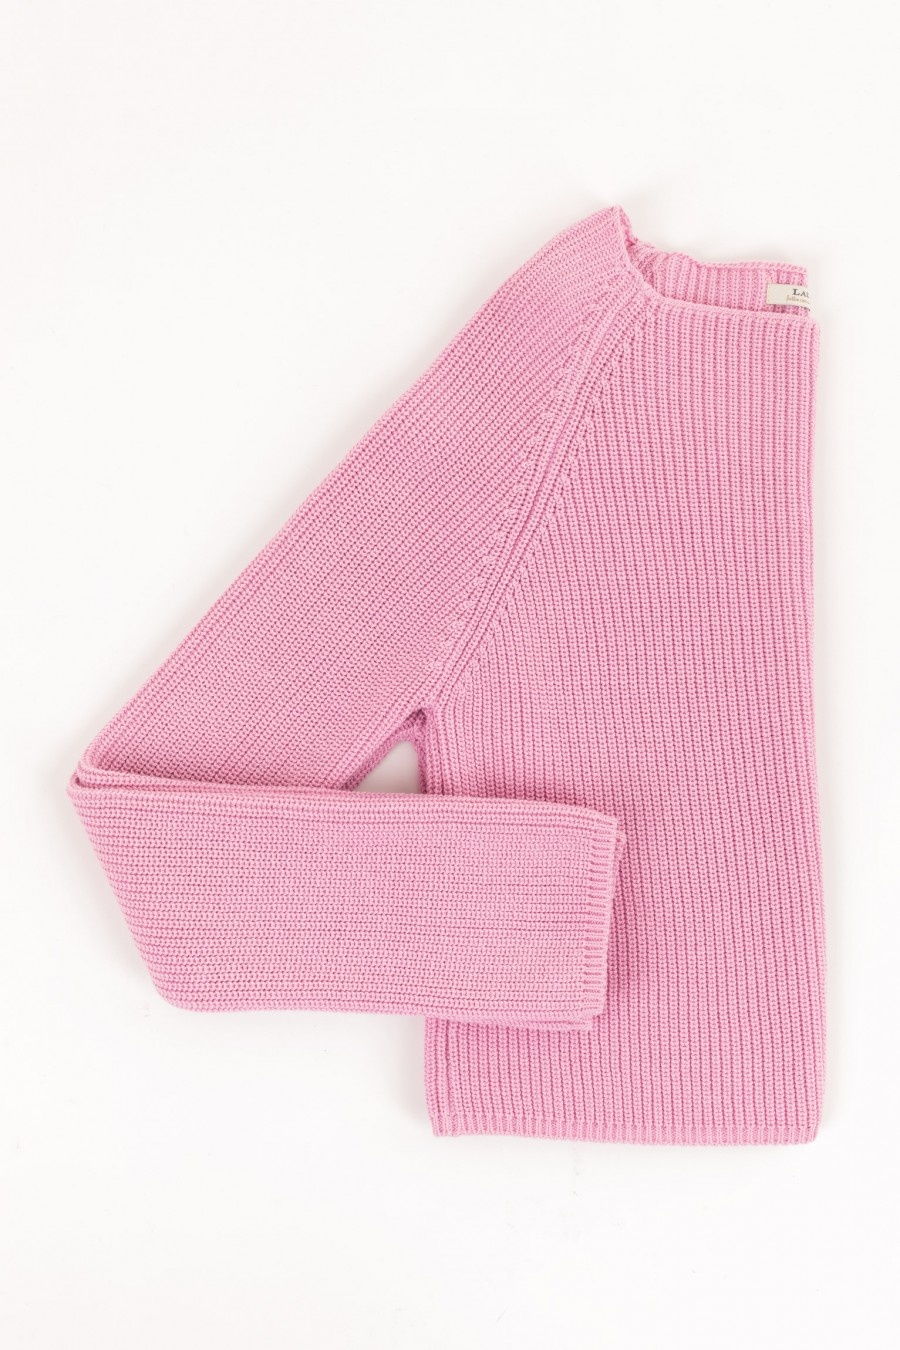 Maglioncino cropped rosa